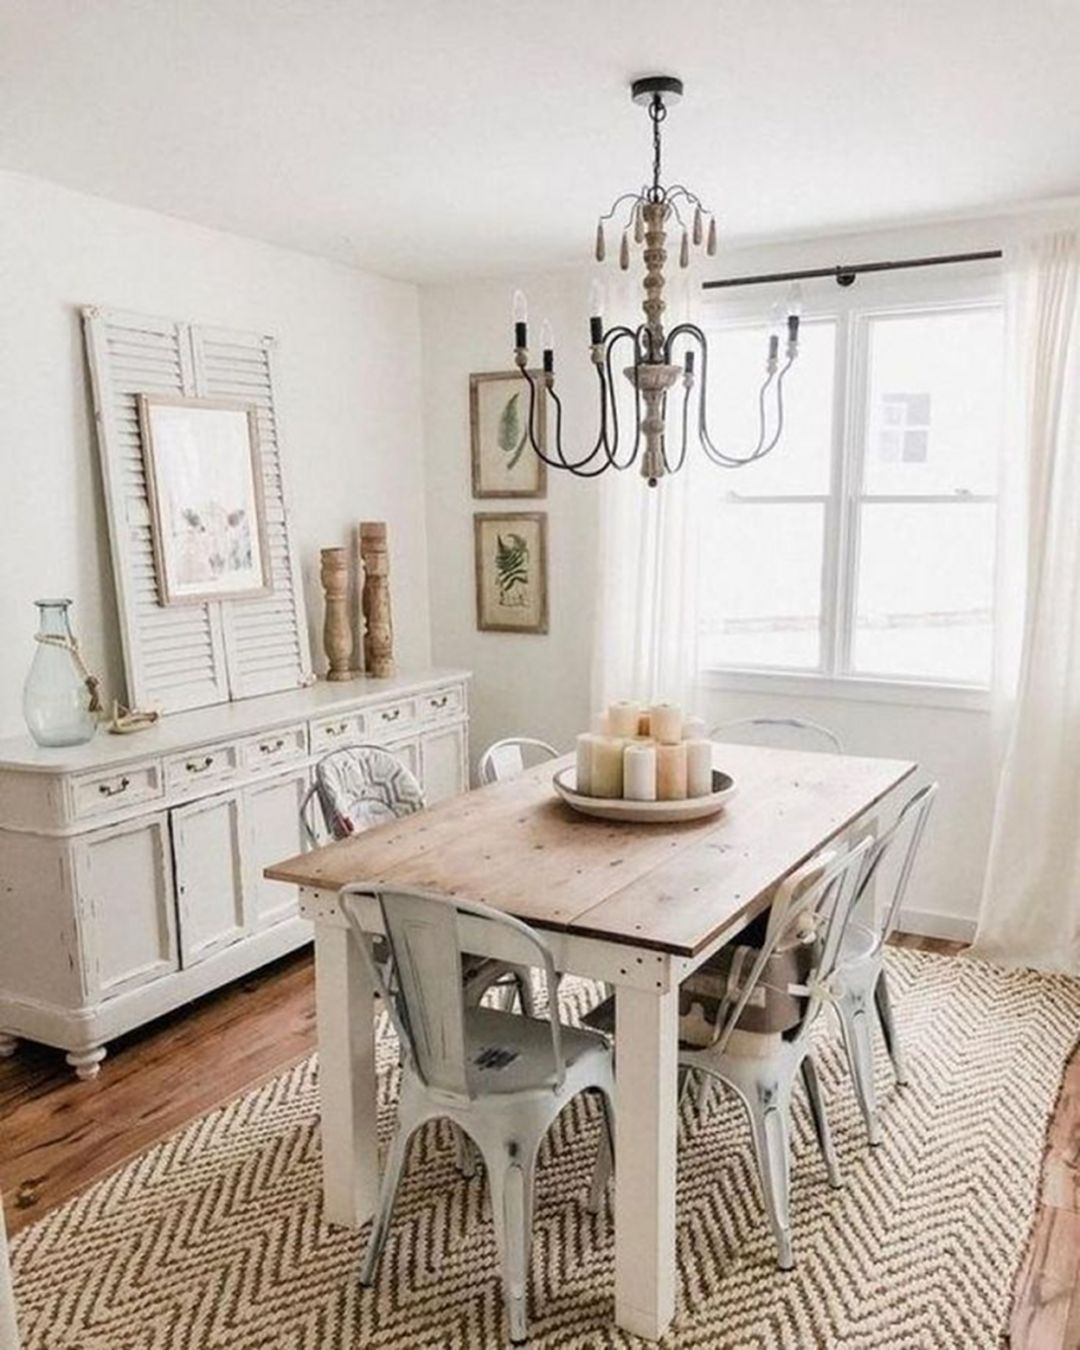 35 Most Popular Dining Room With Farmhouse Dining Table To Increasing Your Appetite